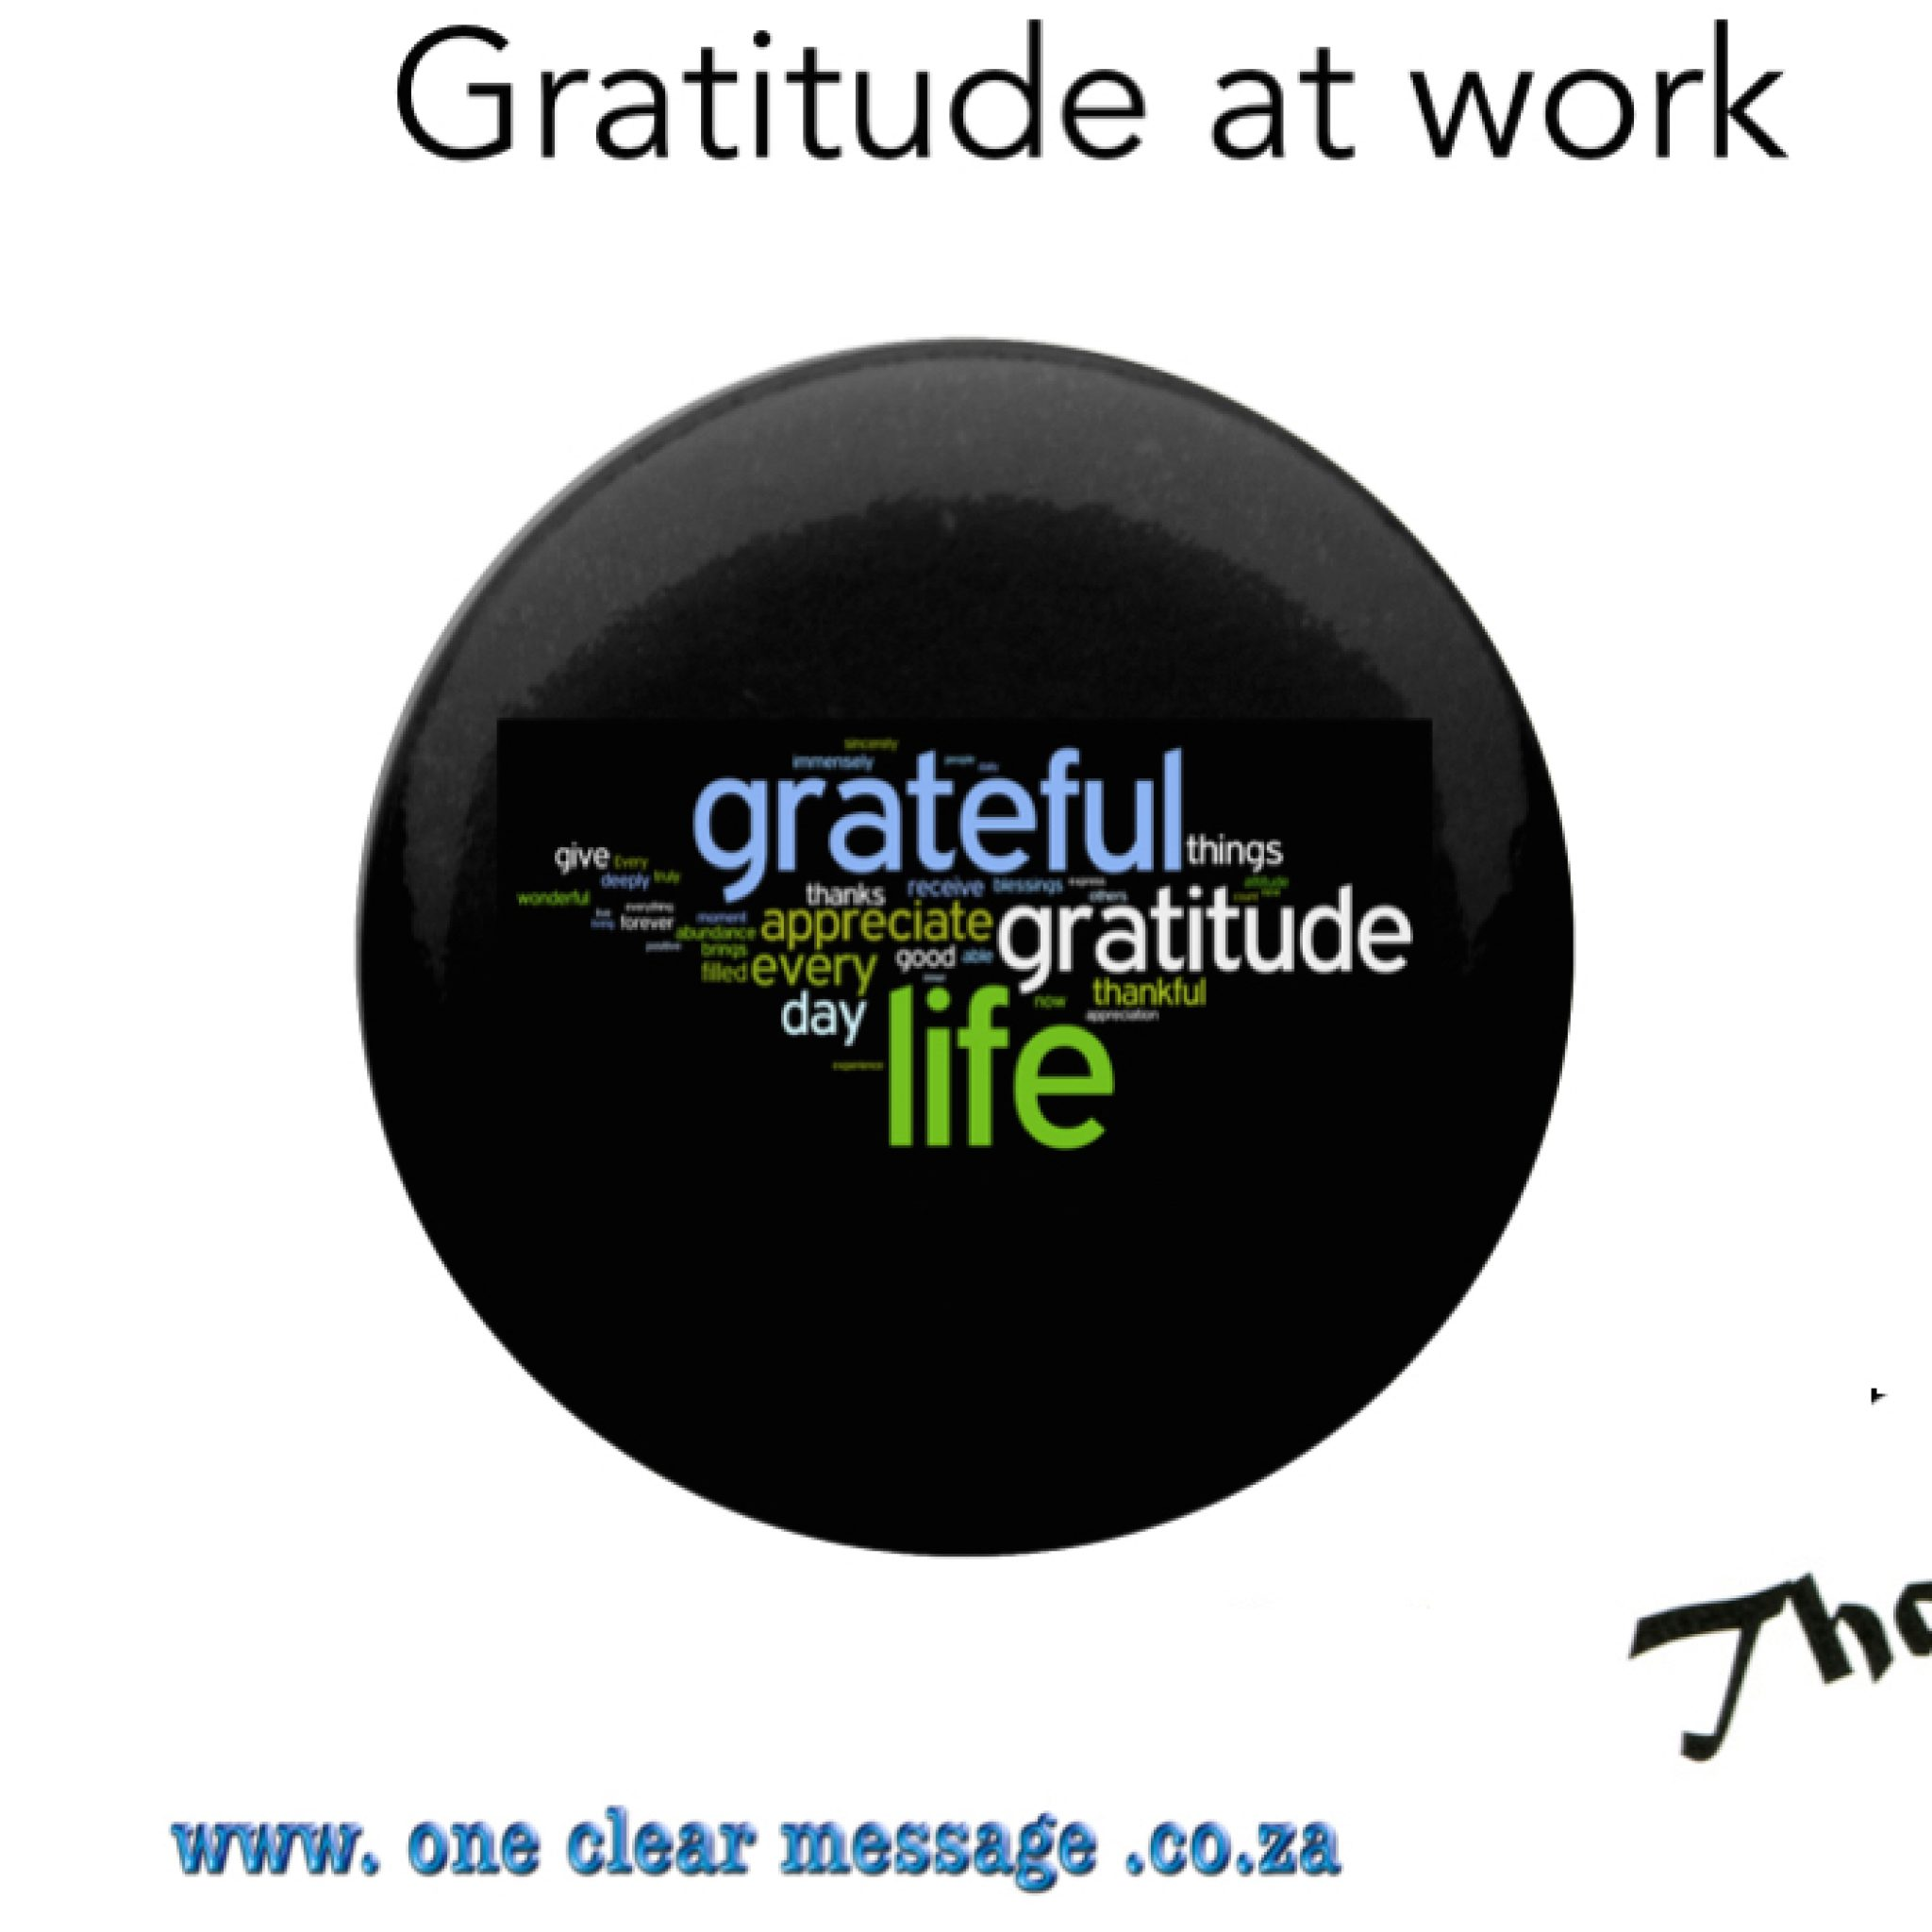 Building an attitude of gratitude at work